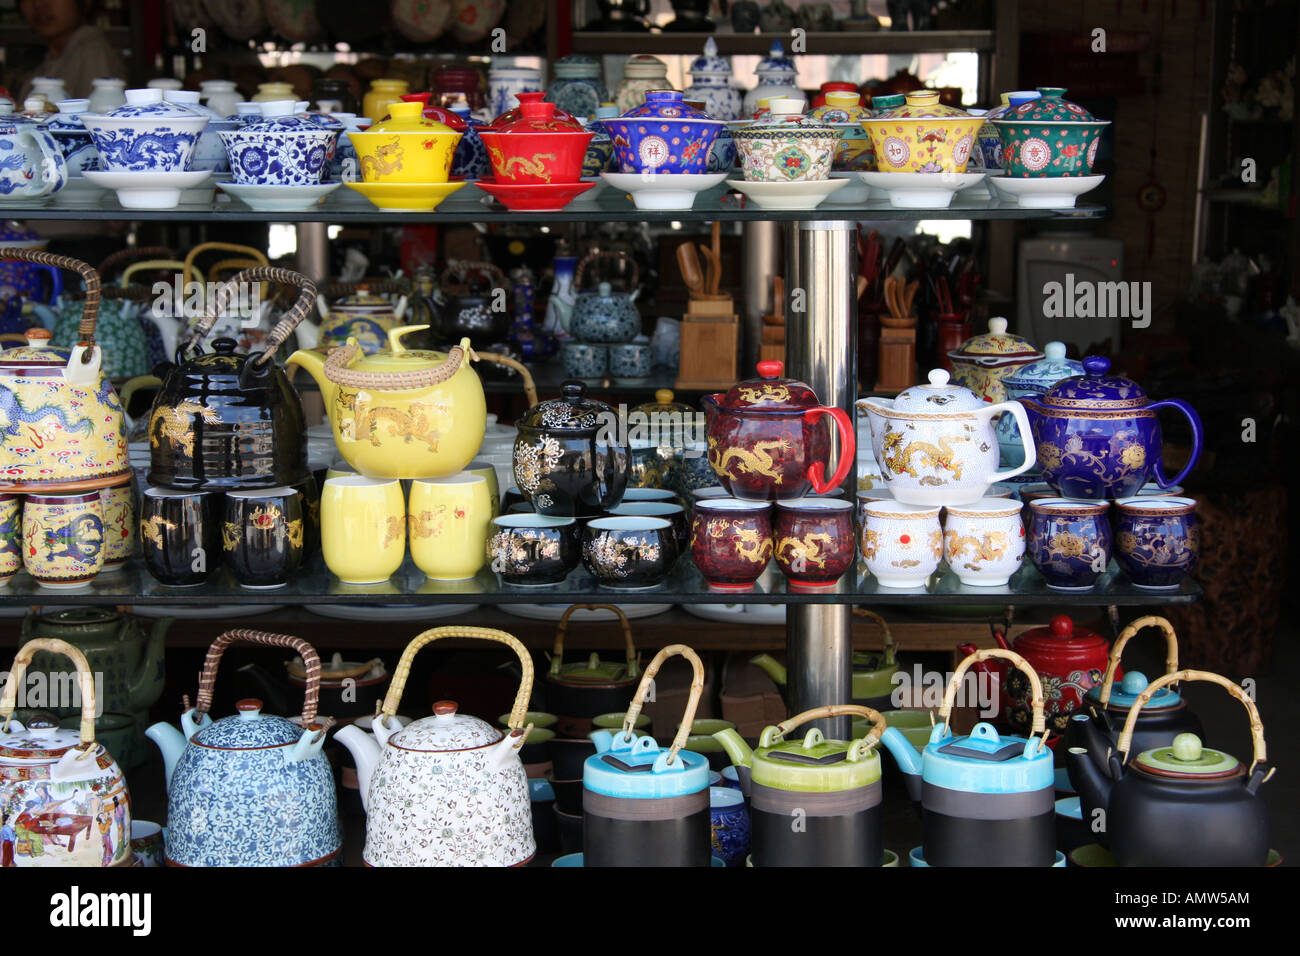 teapots in China - Stock Image